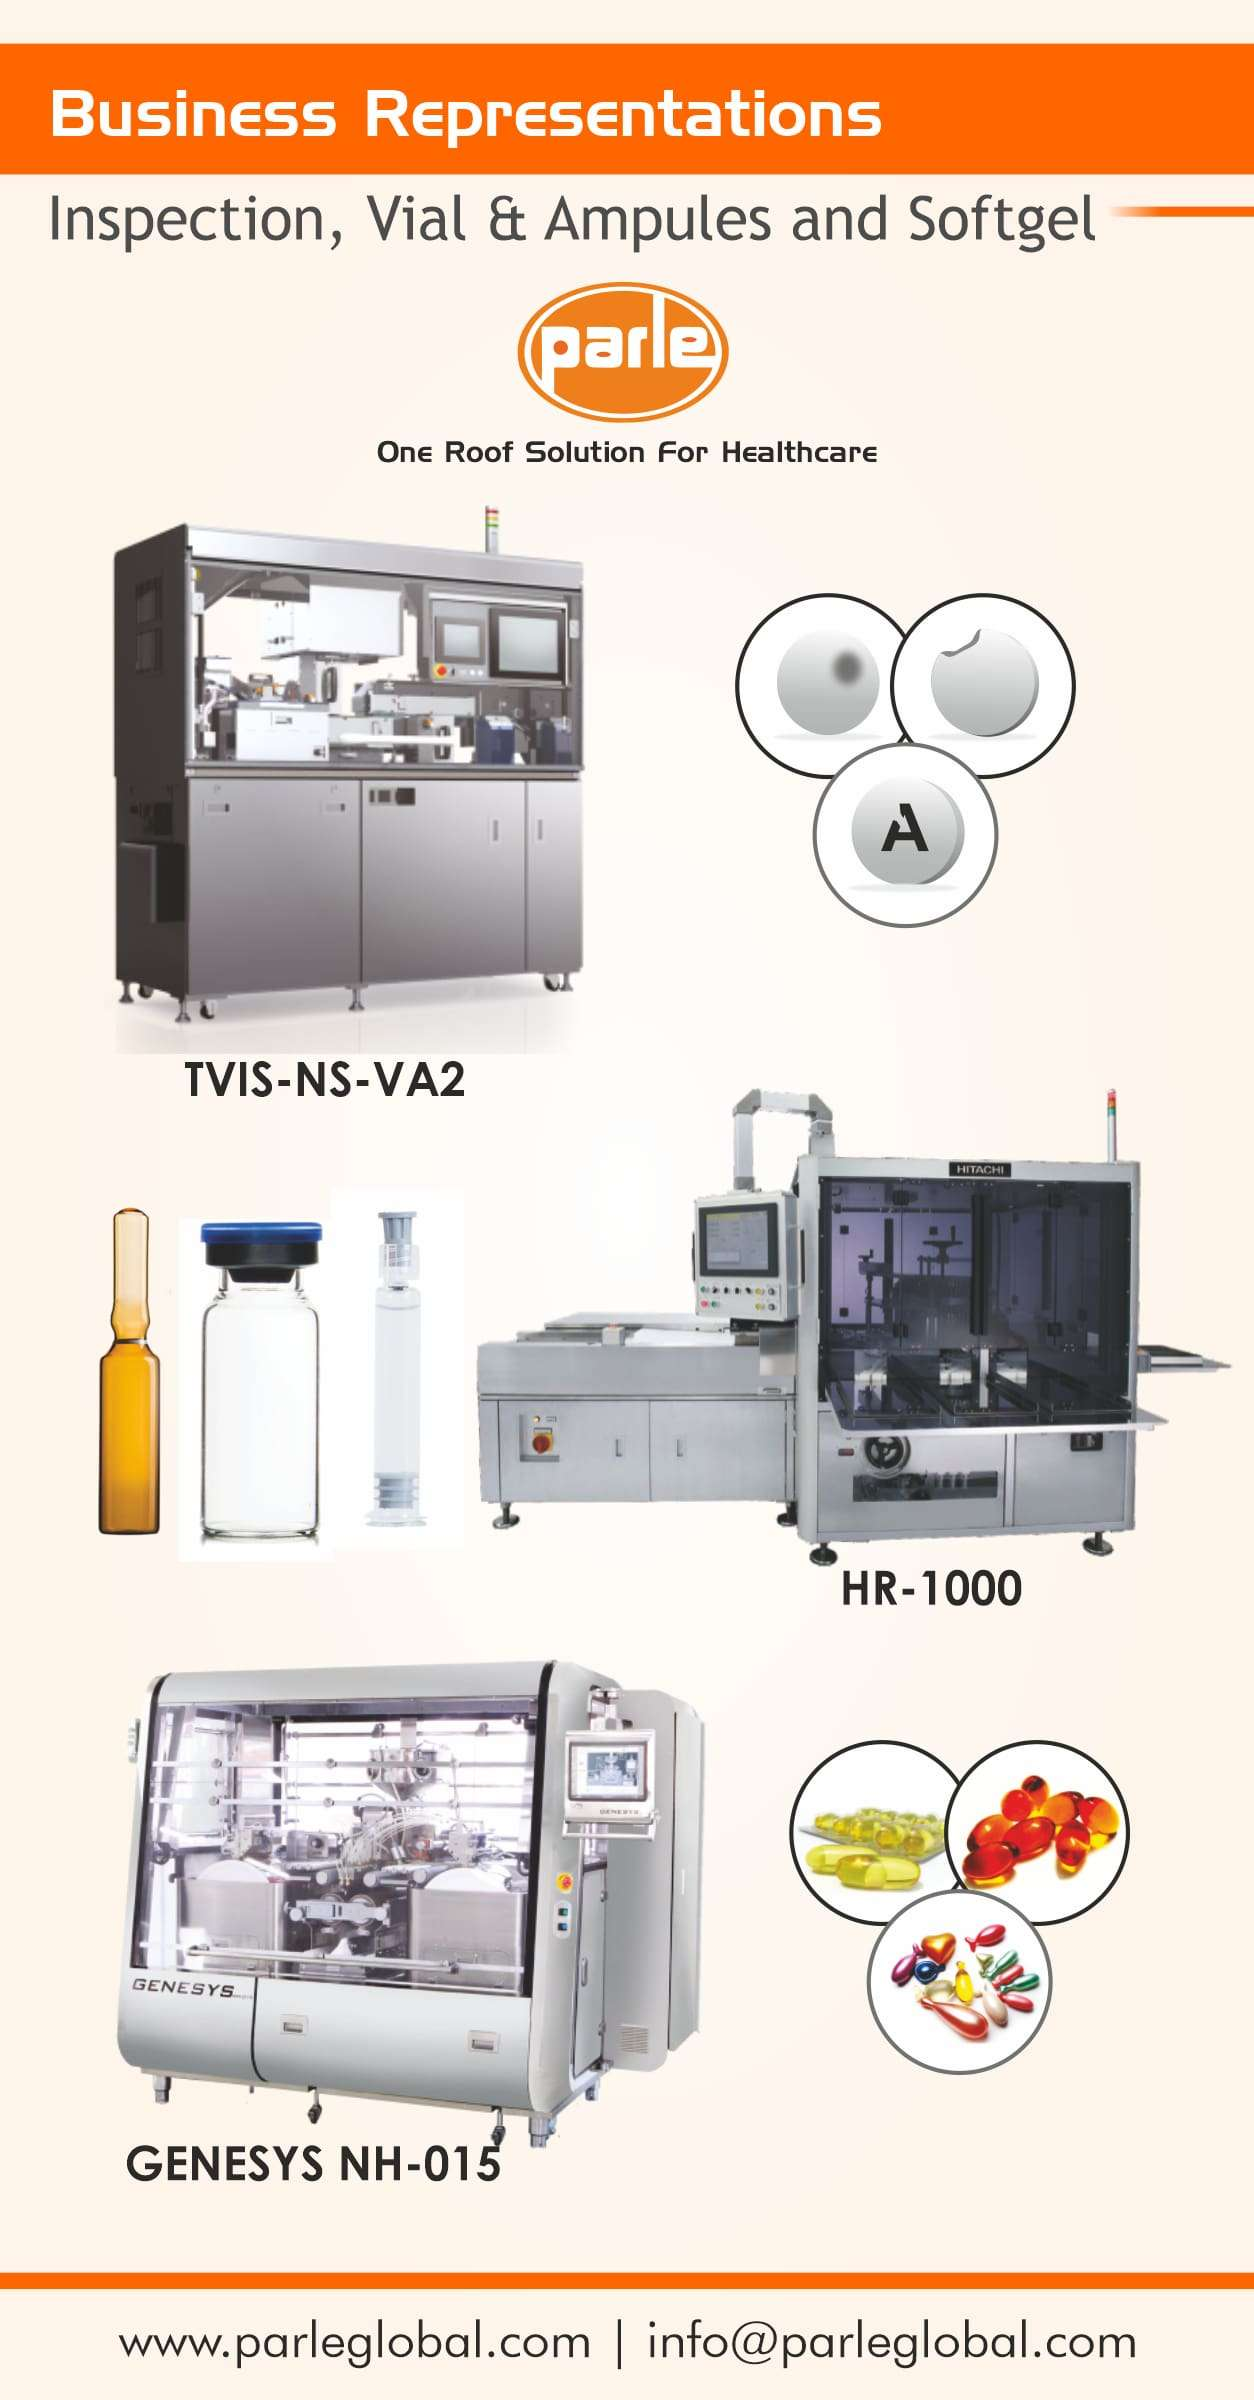 Tablet/Capsule/Amouple/Vial Inspection System and Encapsulation Solution